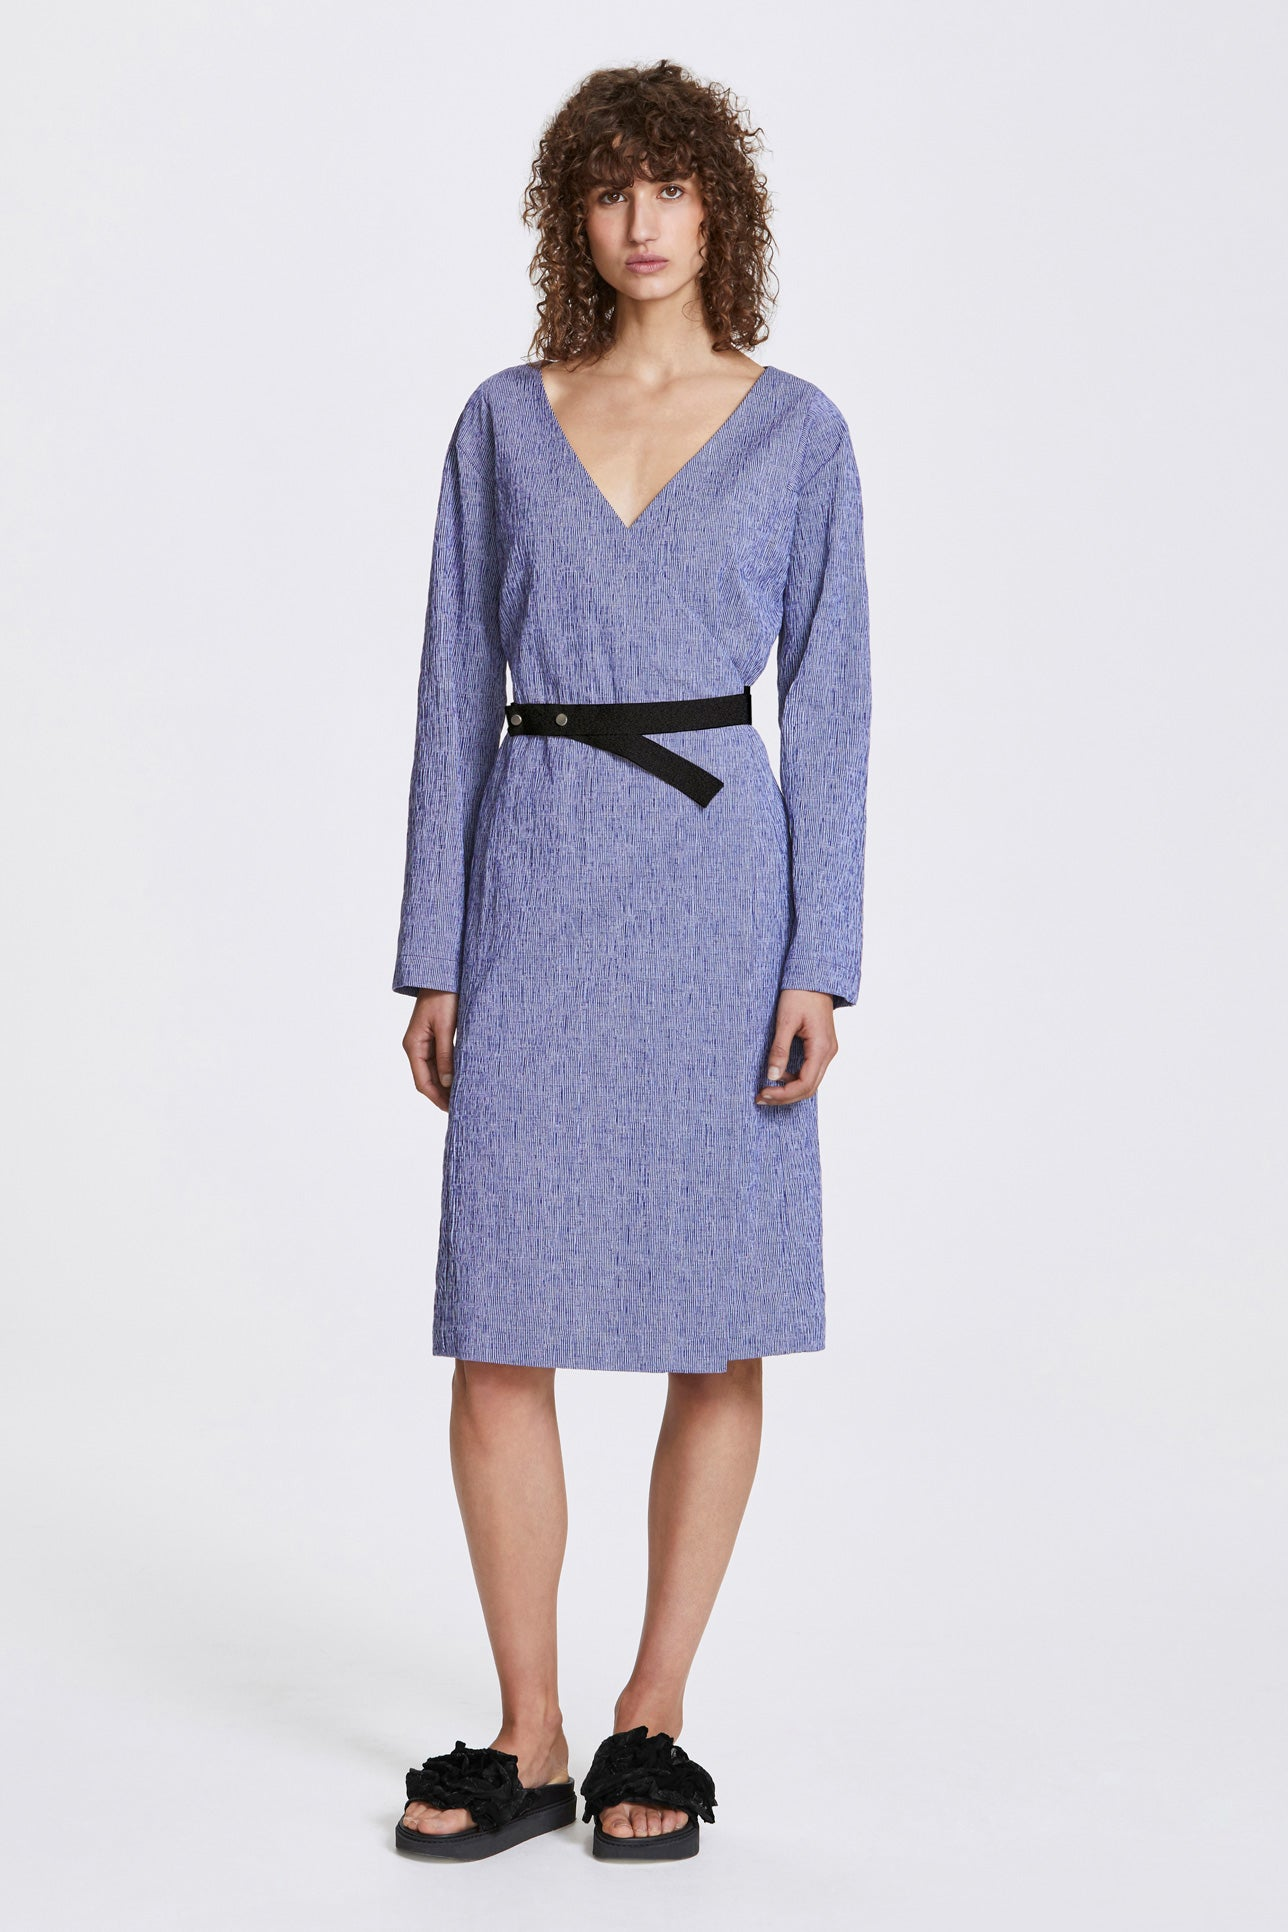 Bi-stud wrap dress - Textured cotton stripe - Blue and white